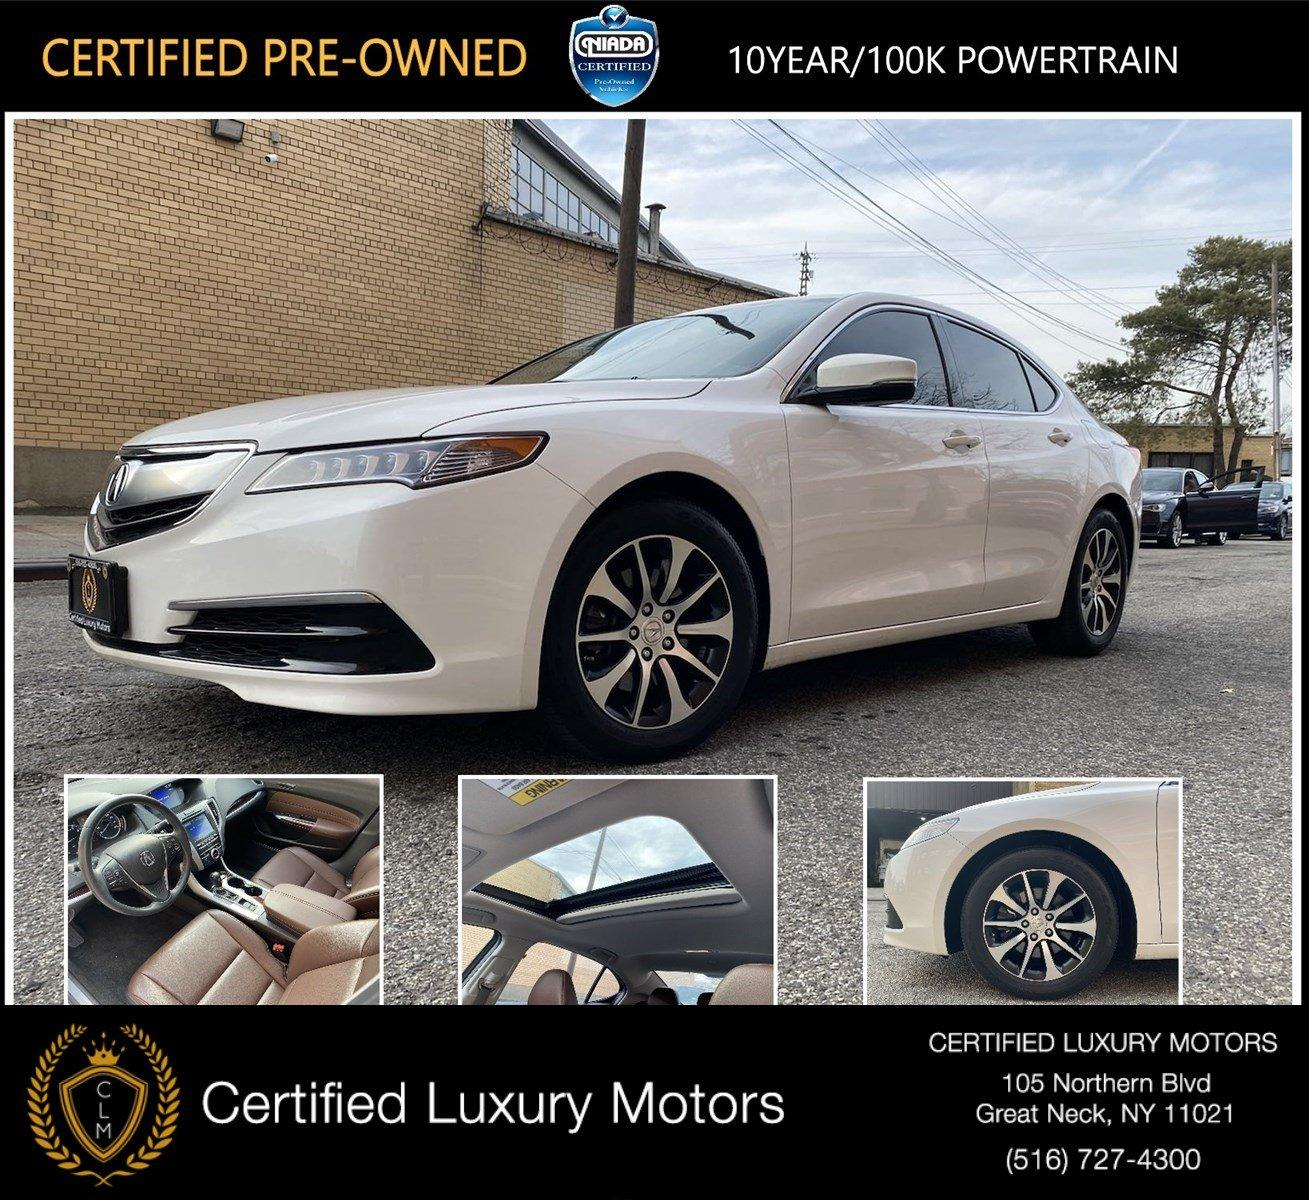 2017 Acura TLX Stock # C0635-Q For Sale Near Great Neck